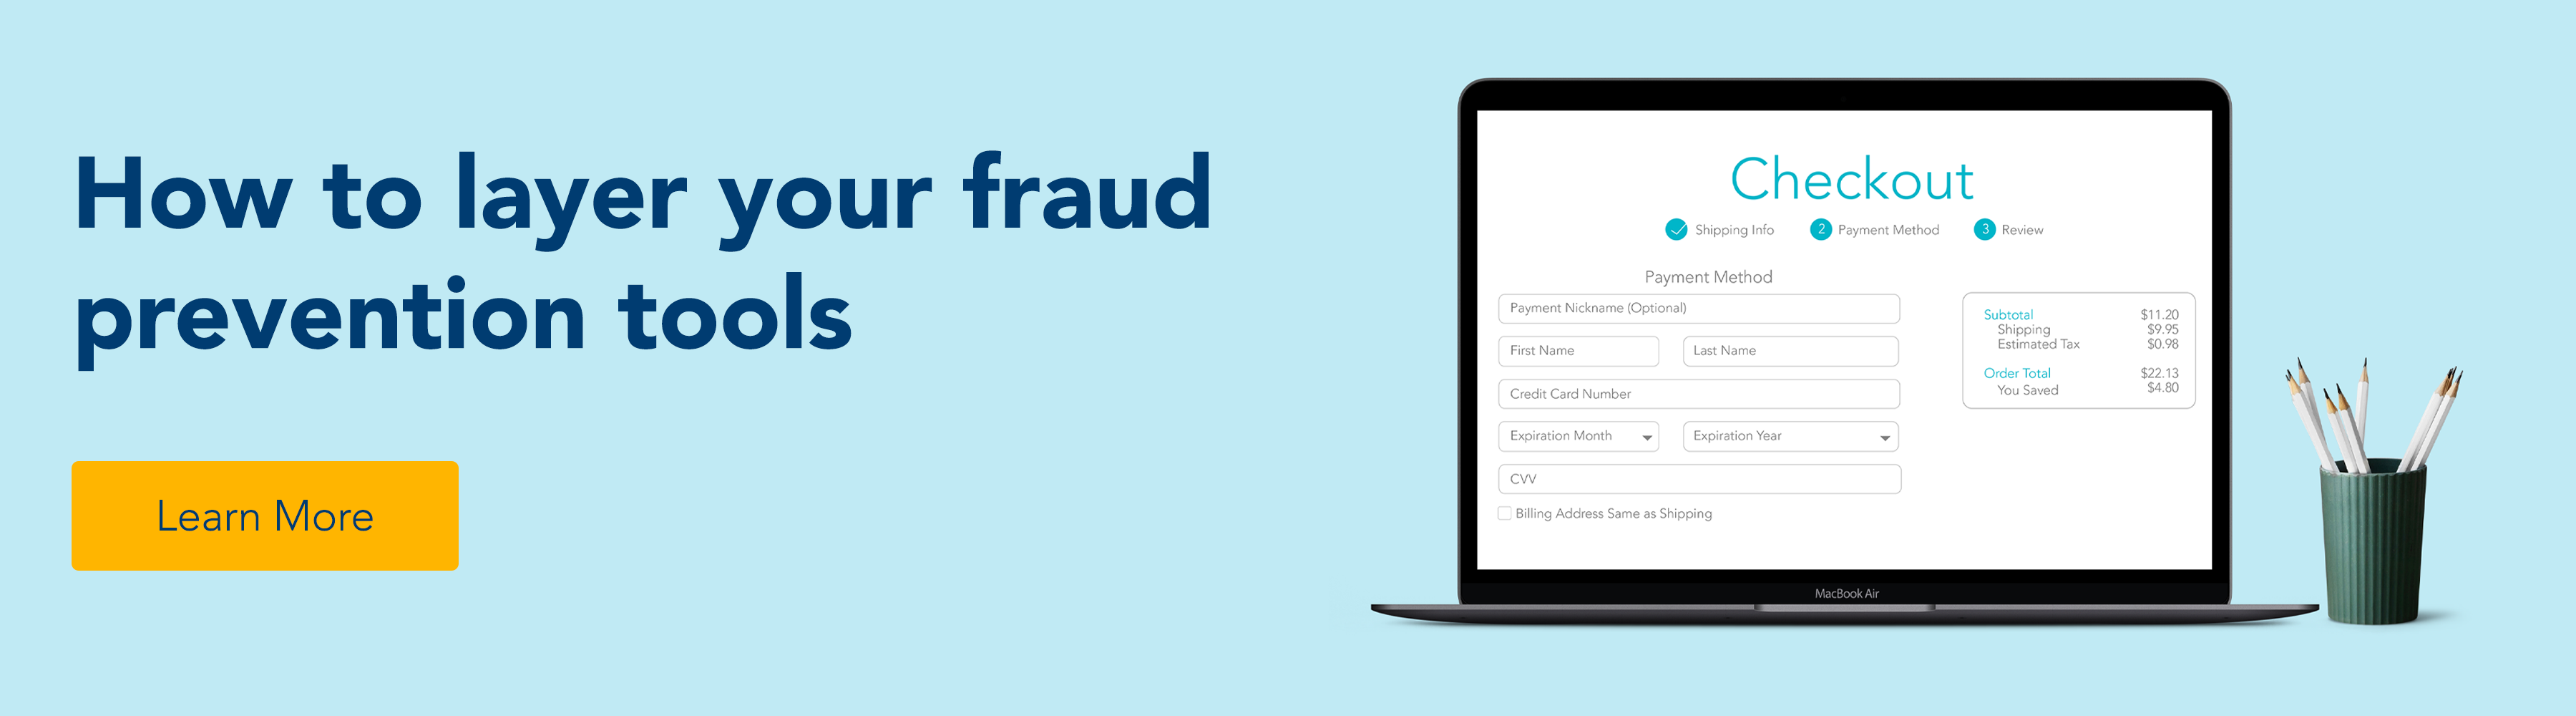 How to layer your fraud prevention tools